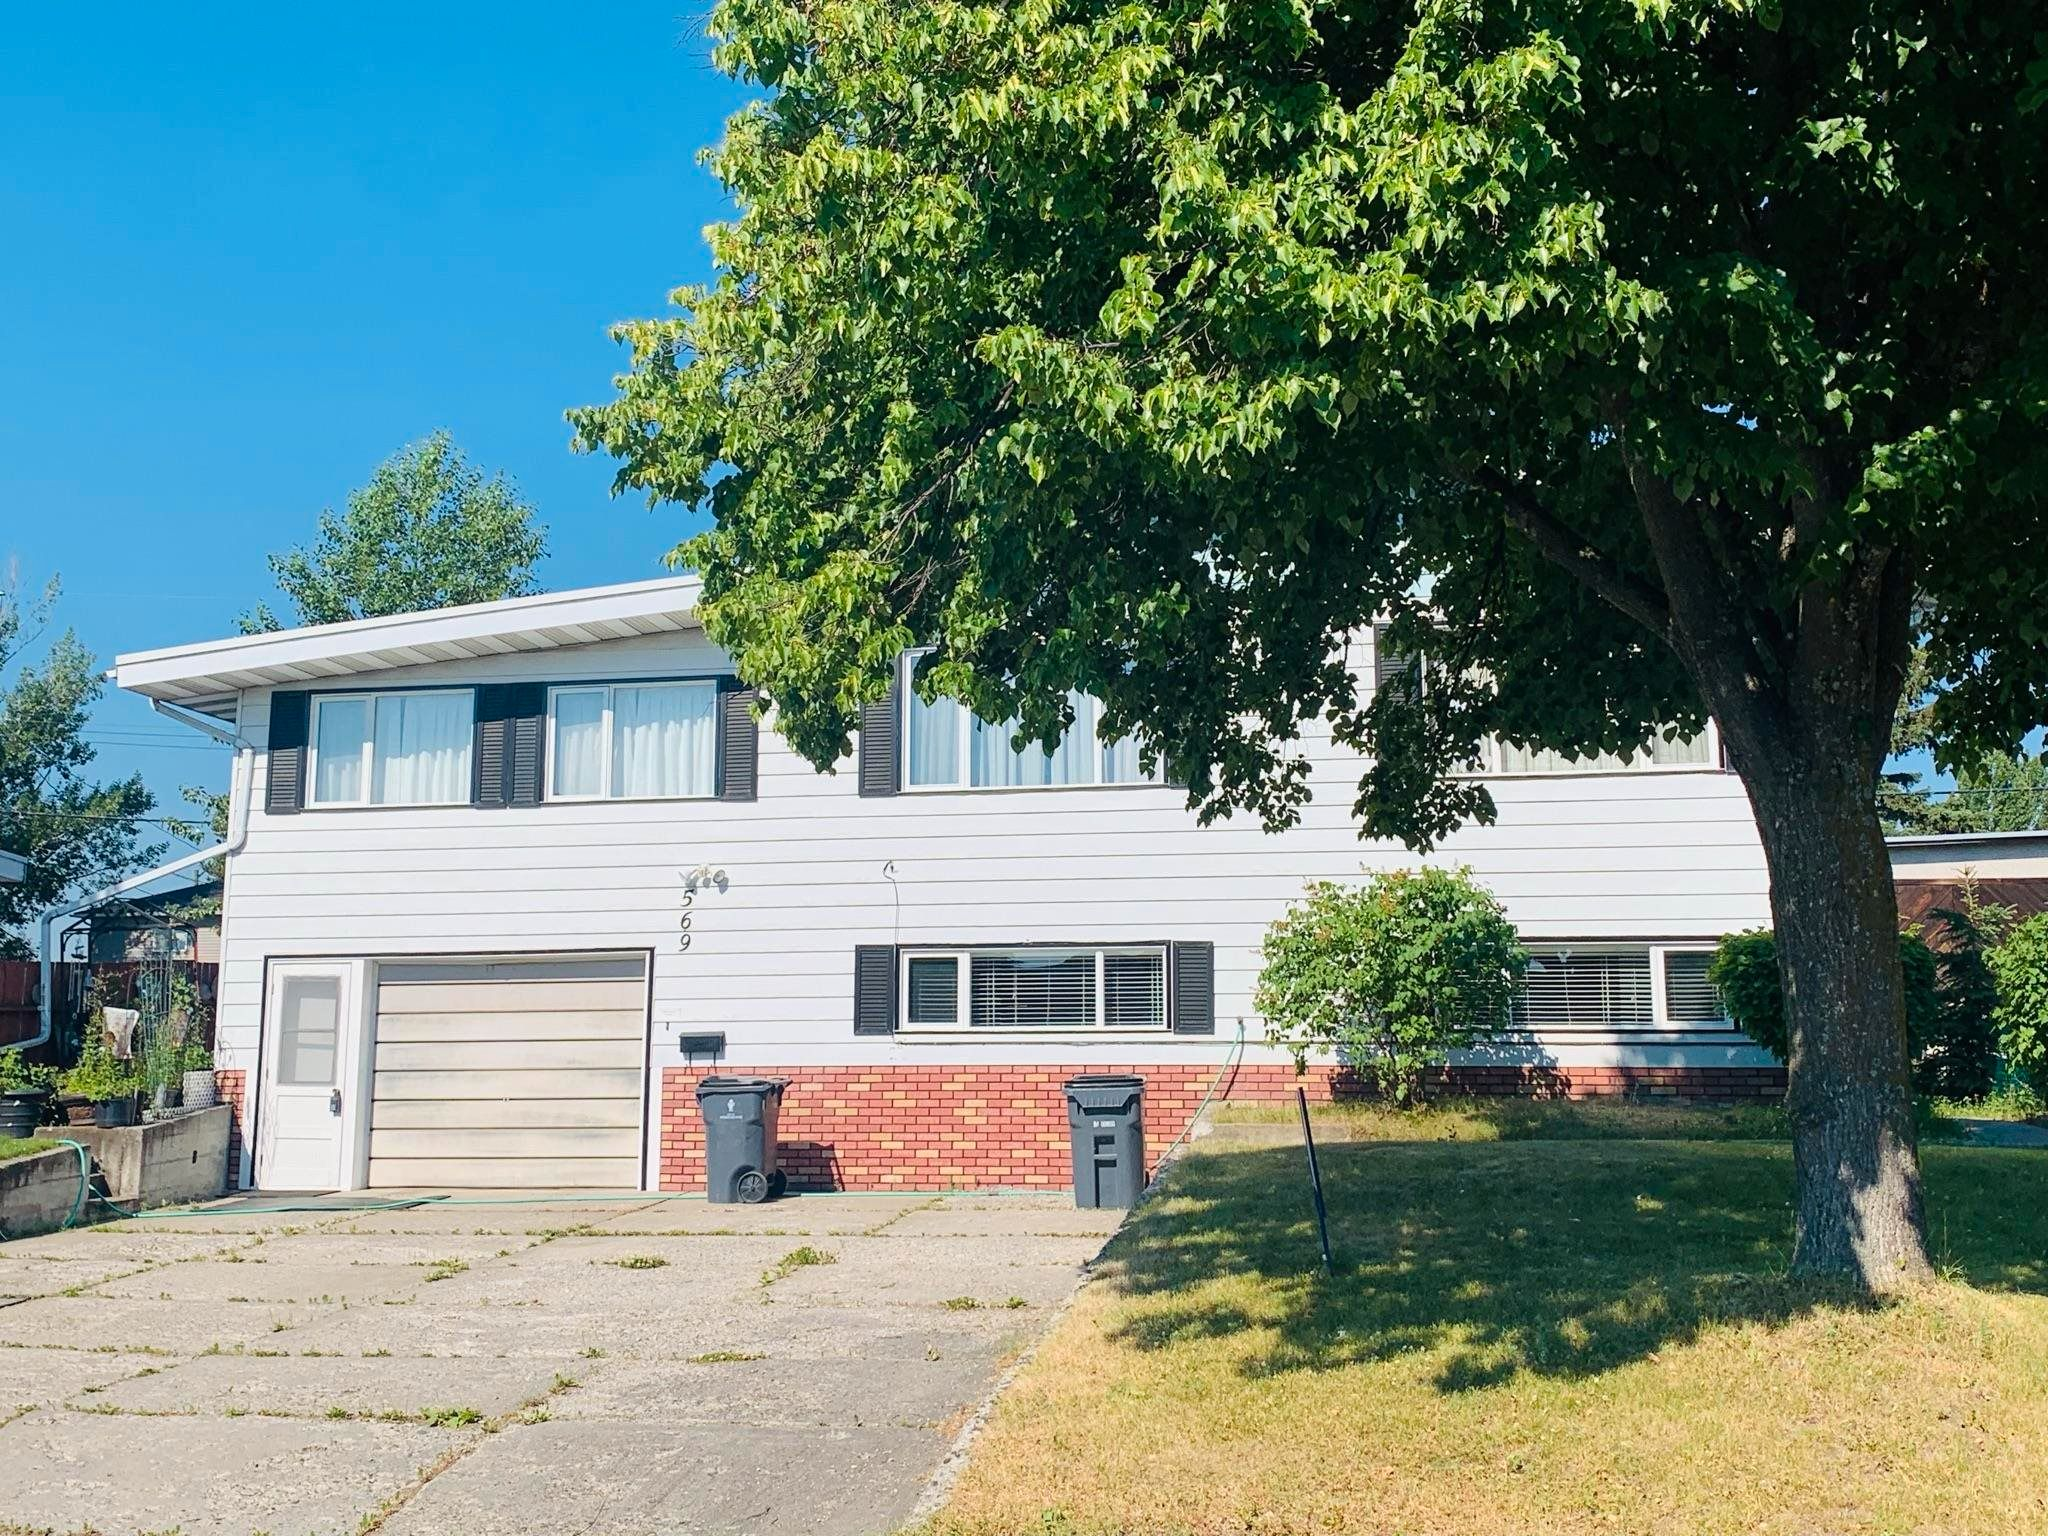 Main Photo: 569 GILLETT Street in Prince George: Central House for sale (PG City Central (Zone 72))  : MLS®# R2620557